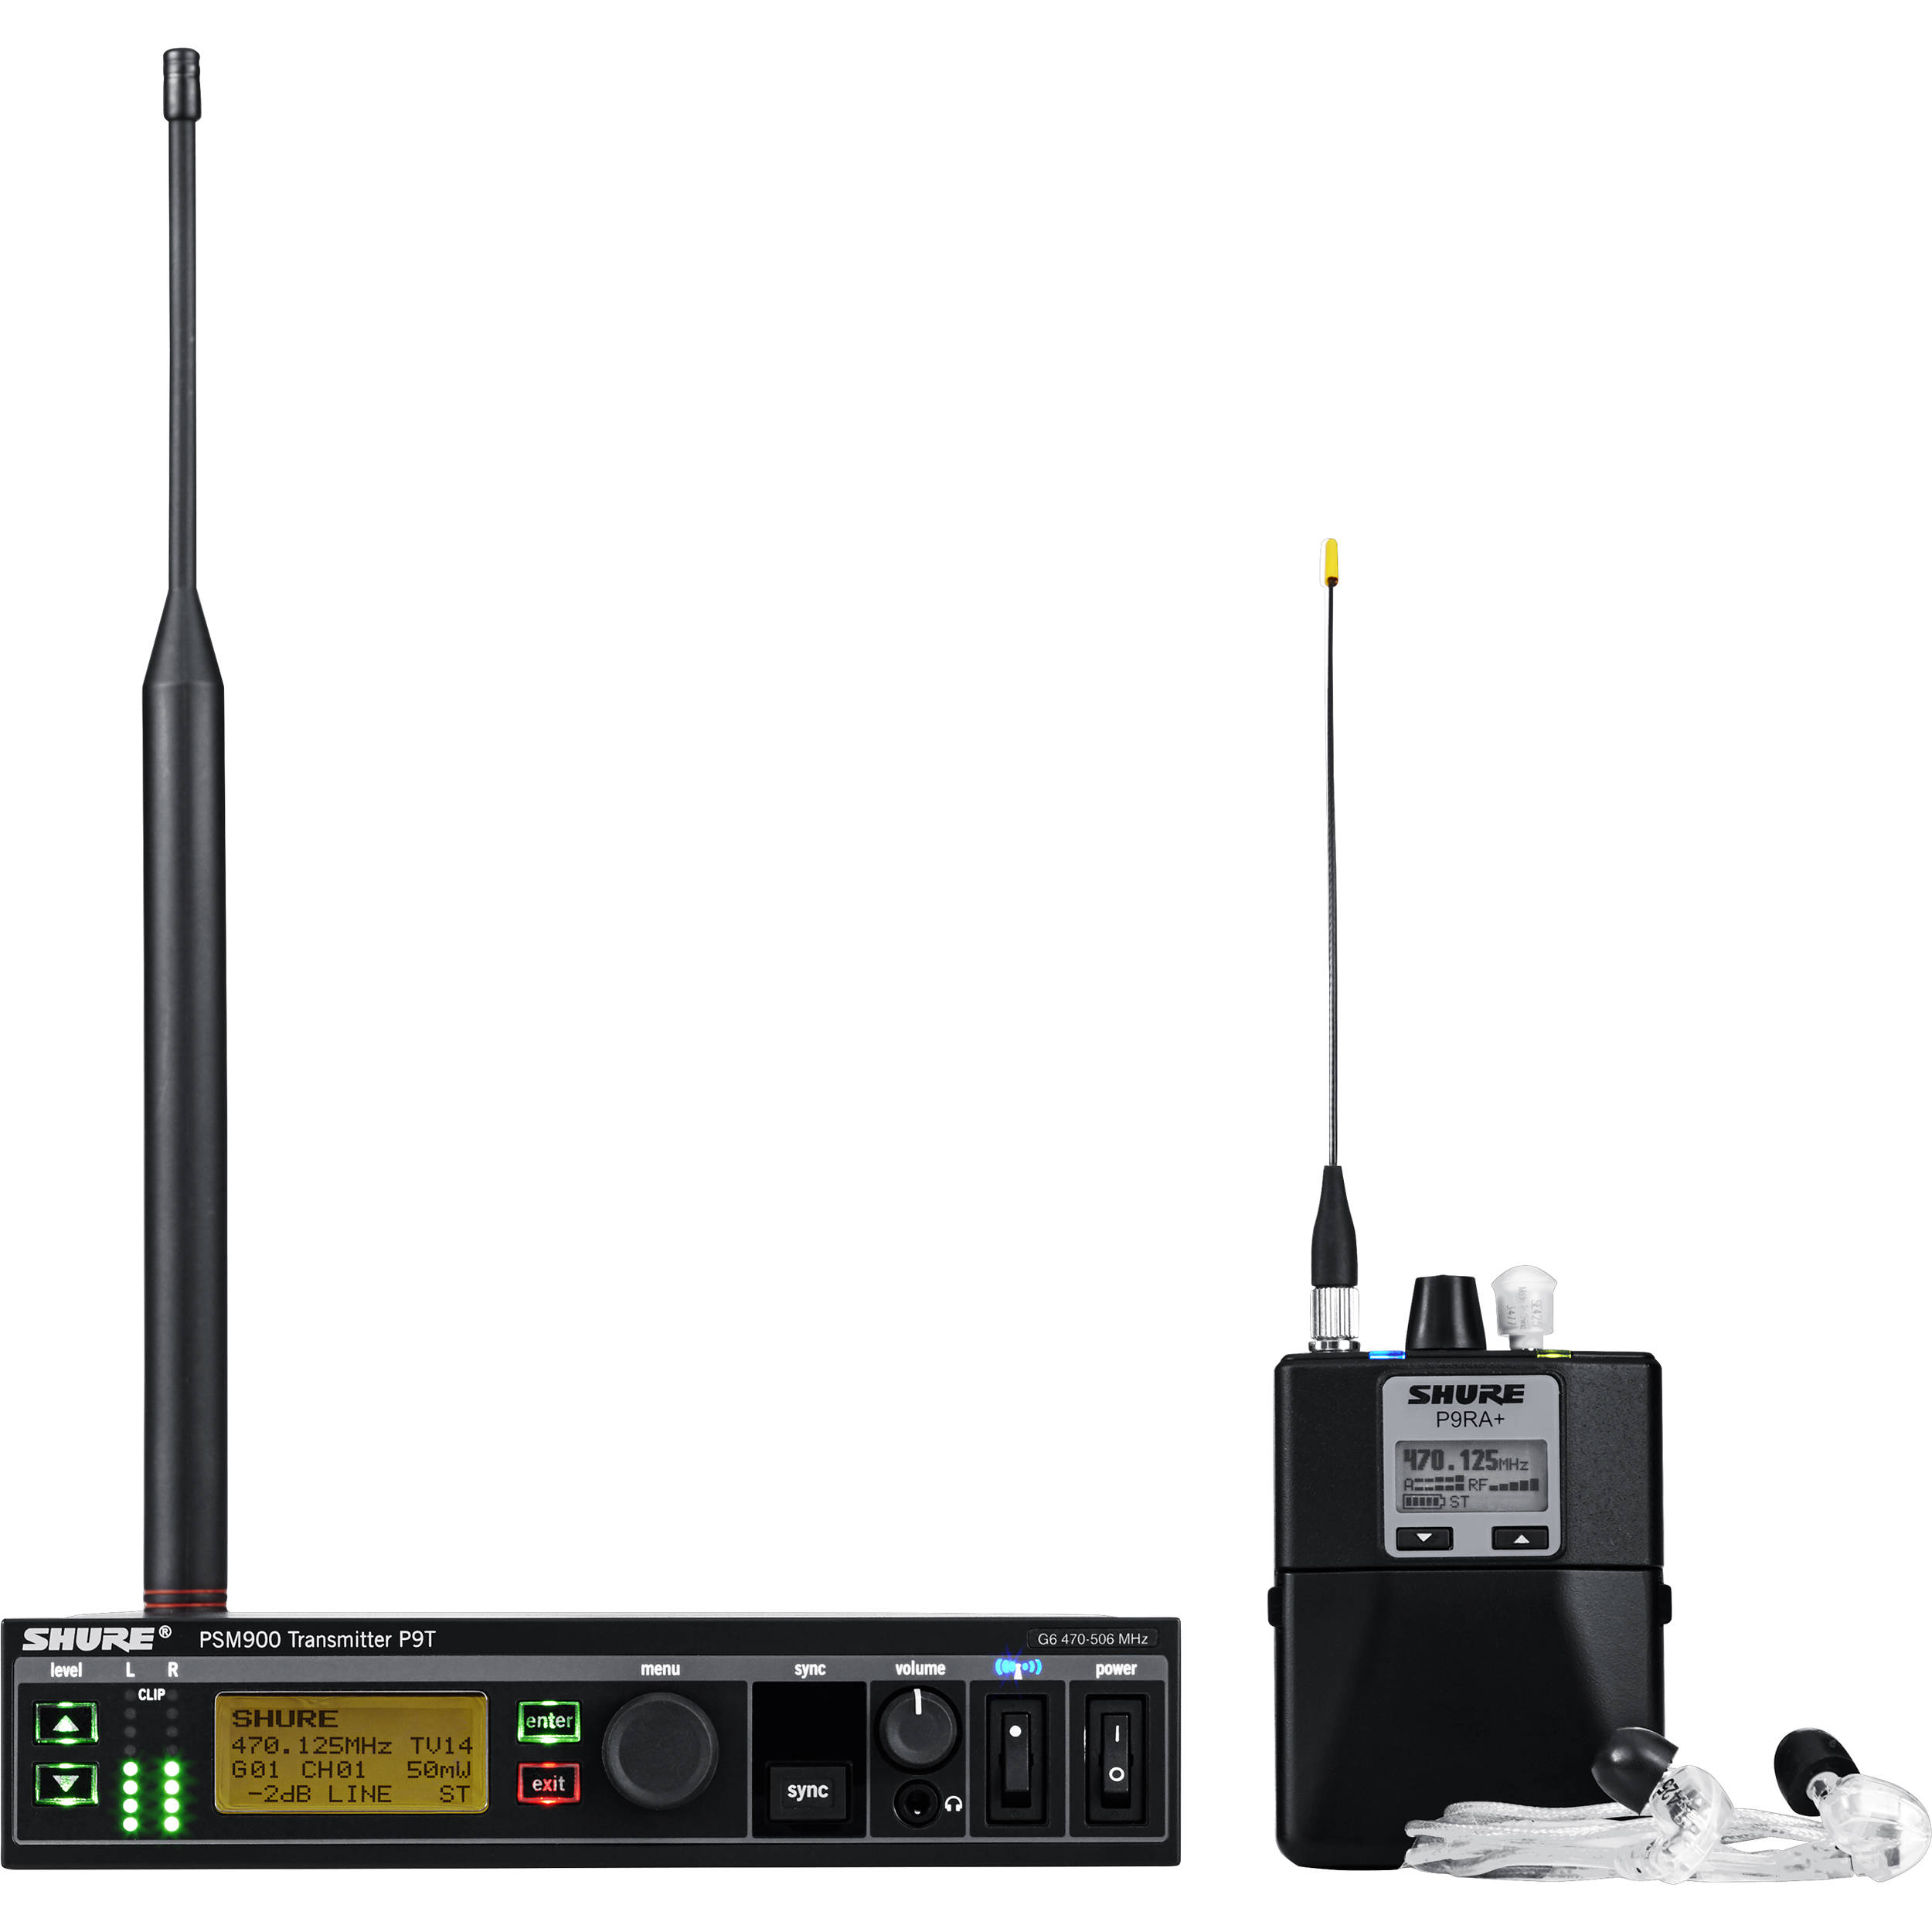 Shure P9TRA+425CL PSM 900 Personal Monitor System G7